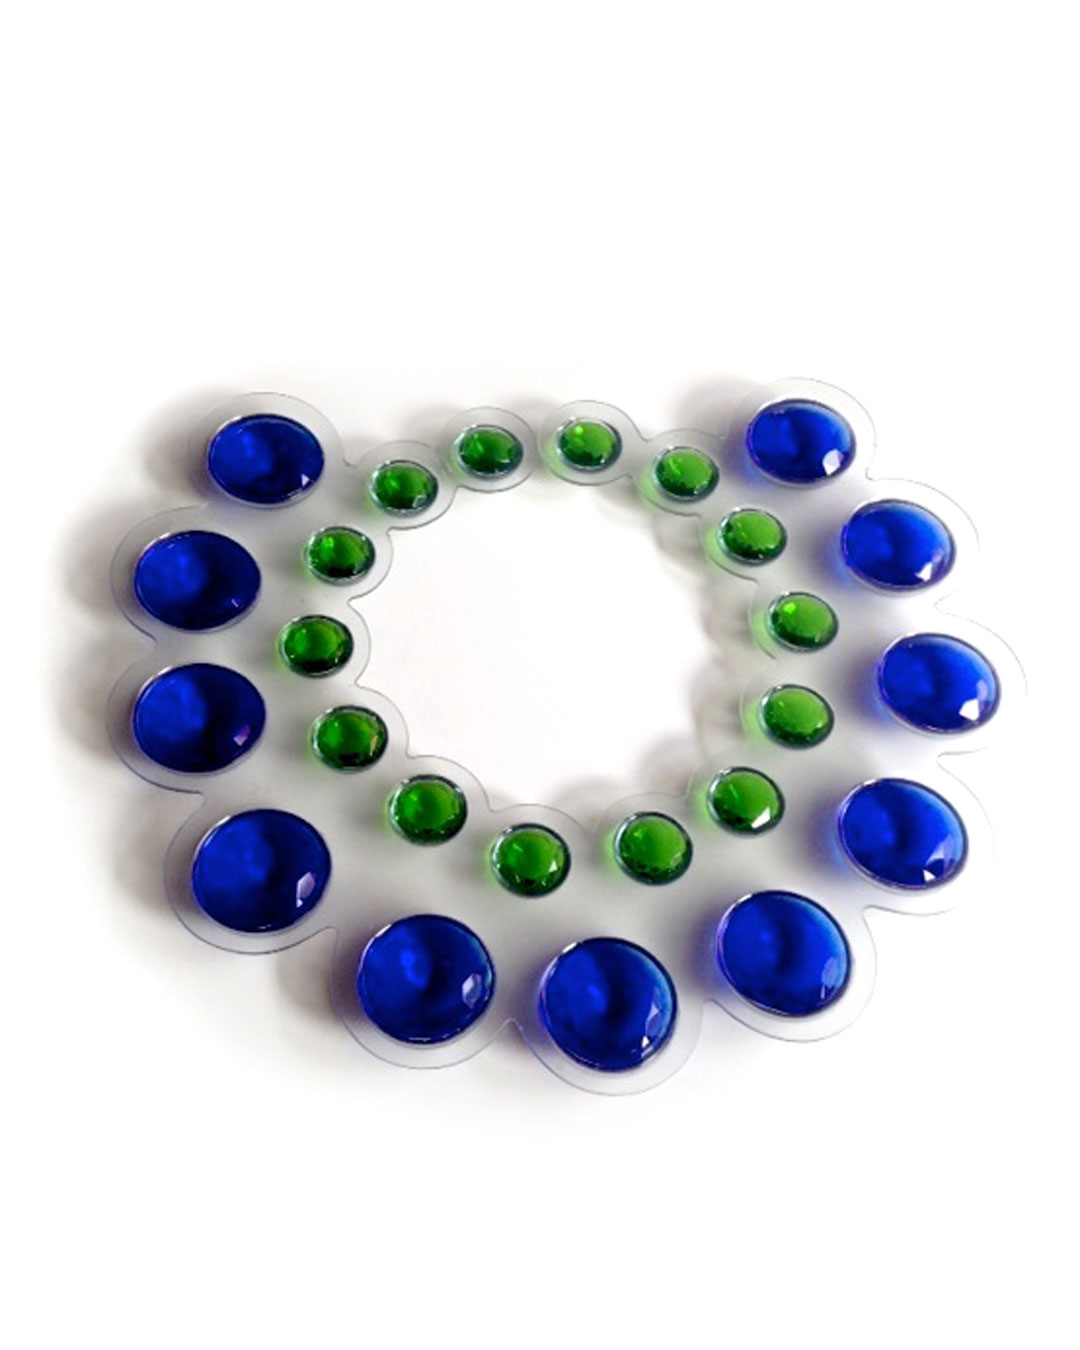 Herman Hermsen, Kraag (Collar), 1989, necklace; PVC, glass, 310 x 330 x 45 mm, €1600